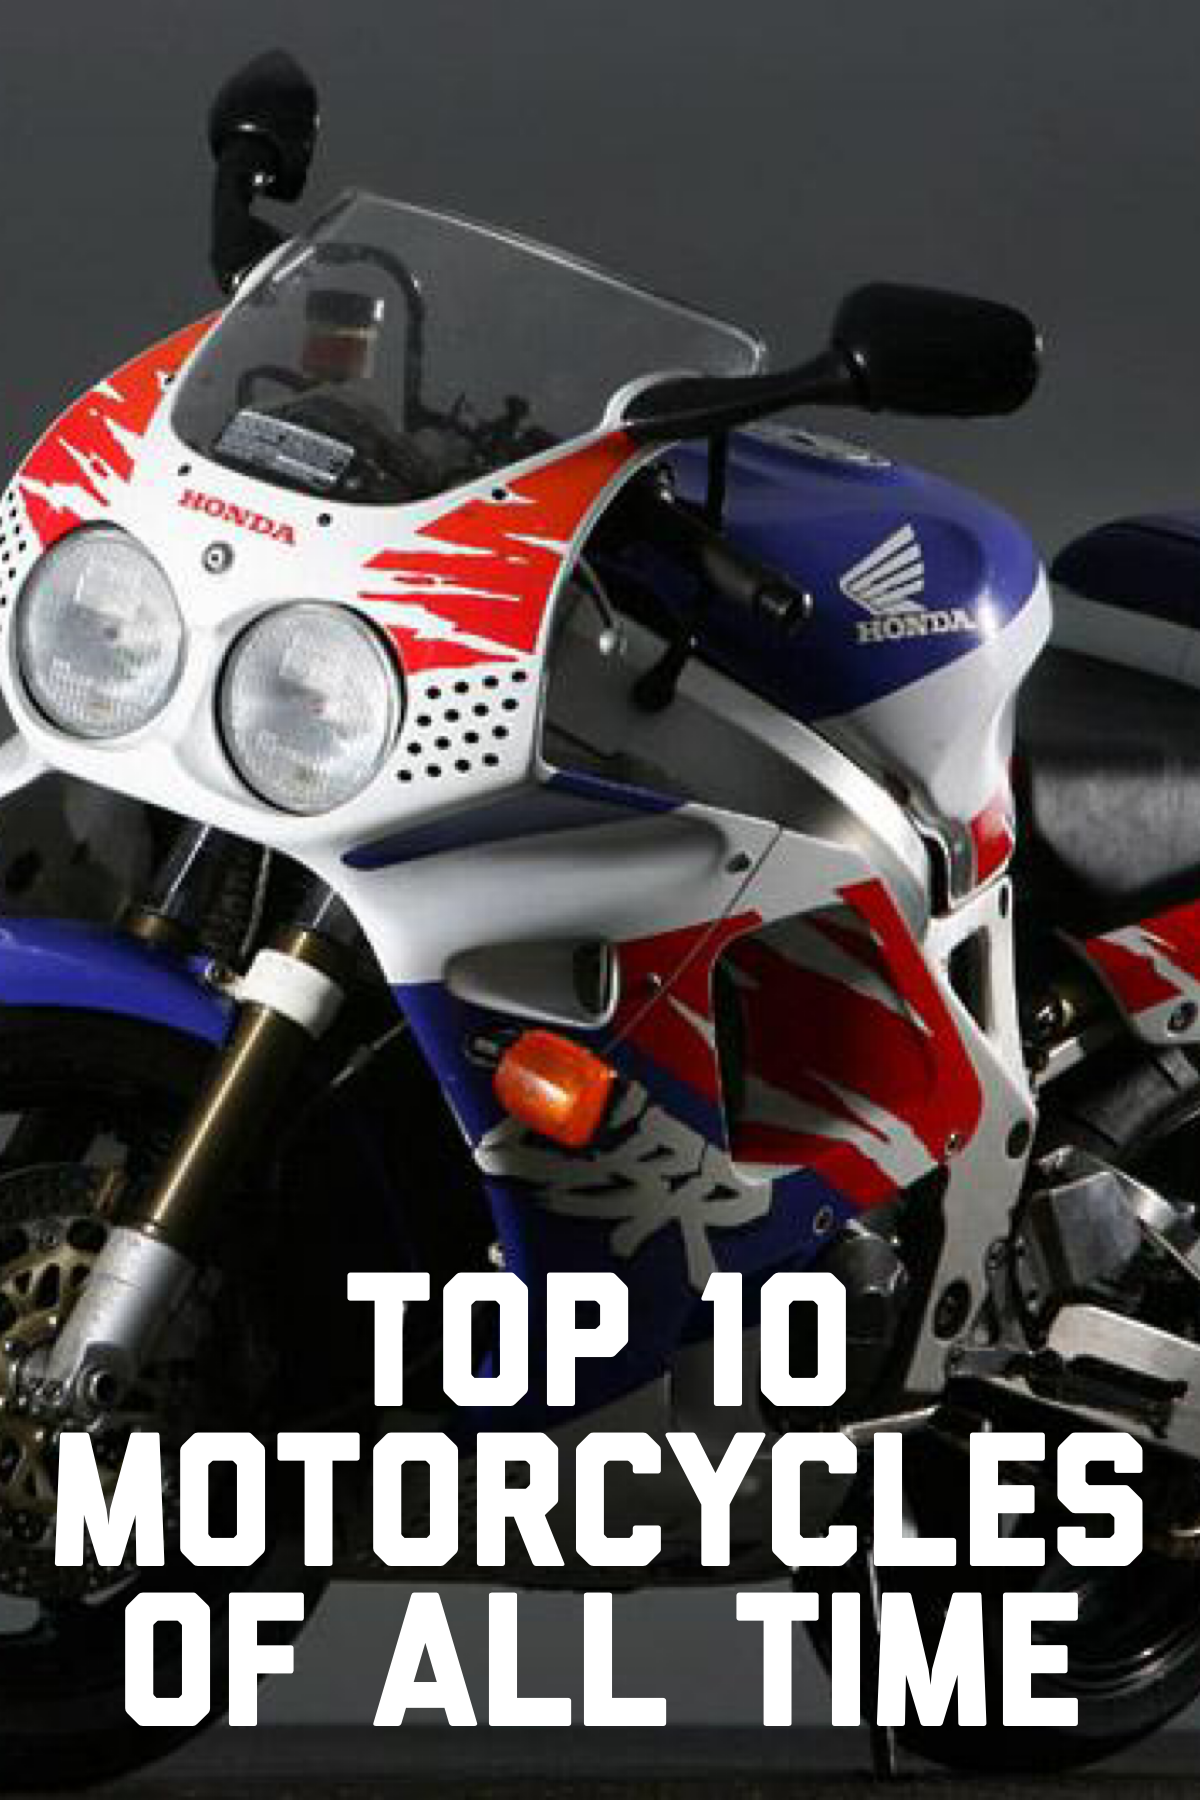 Top 10 Motorcycles Of All Time Motorcycle Tops Motorcycle All